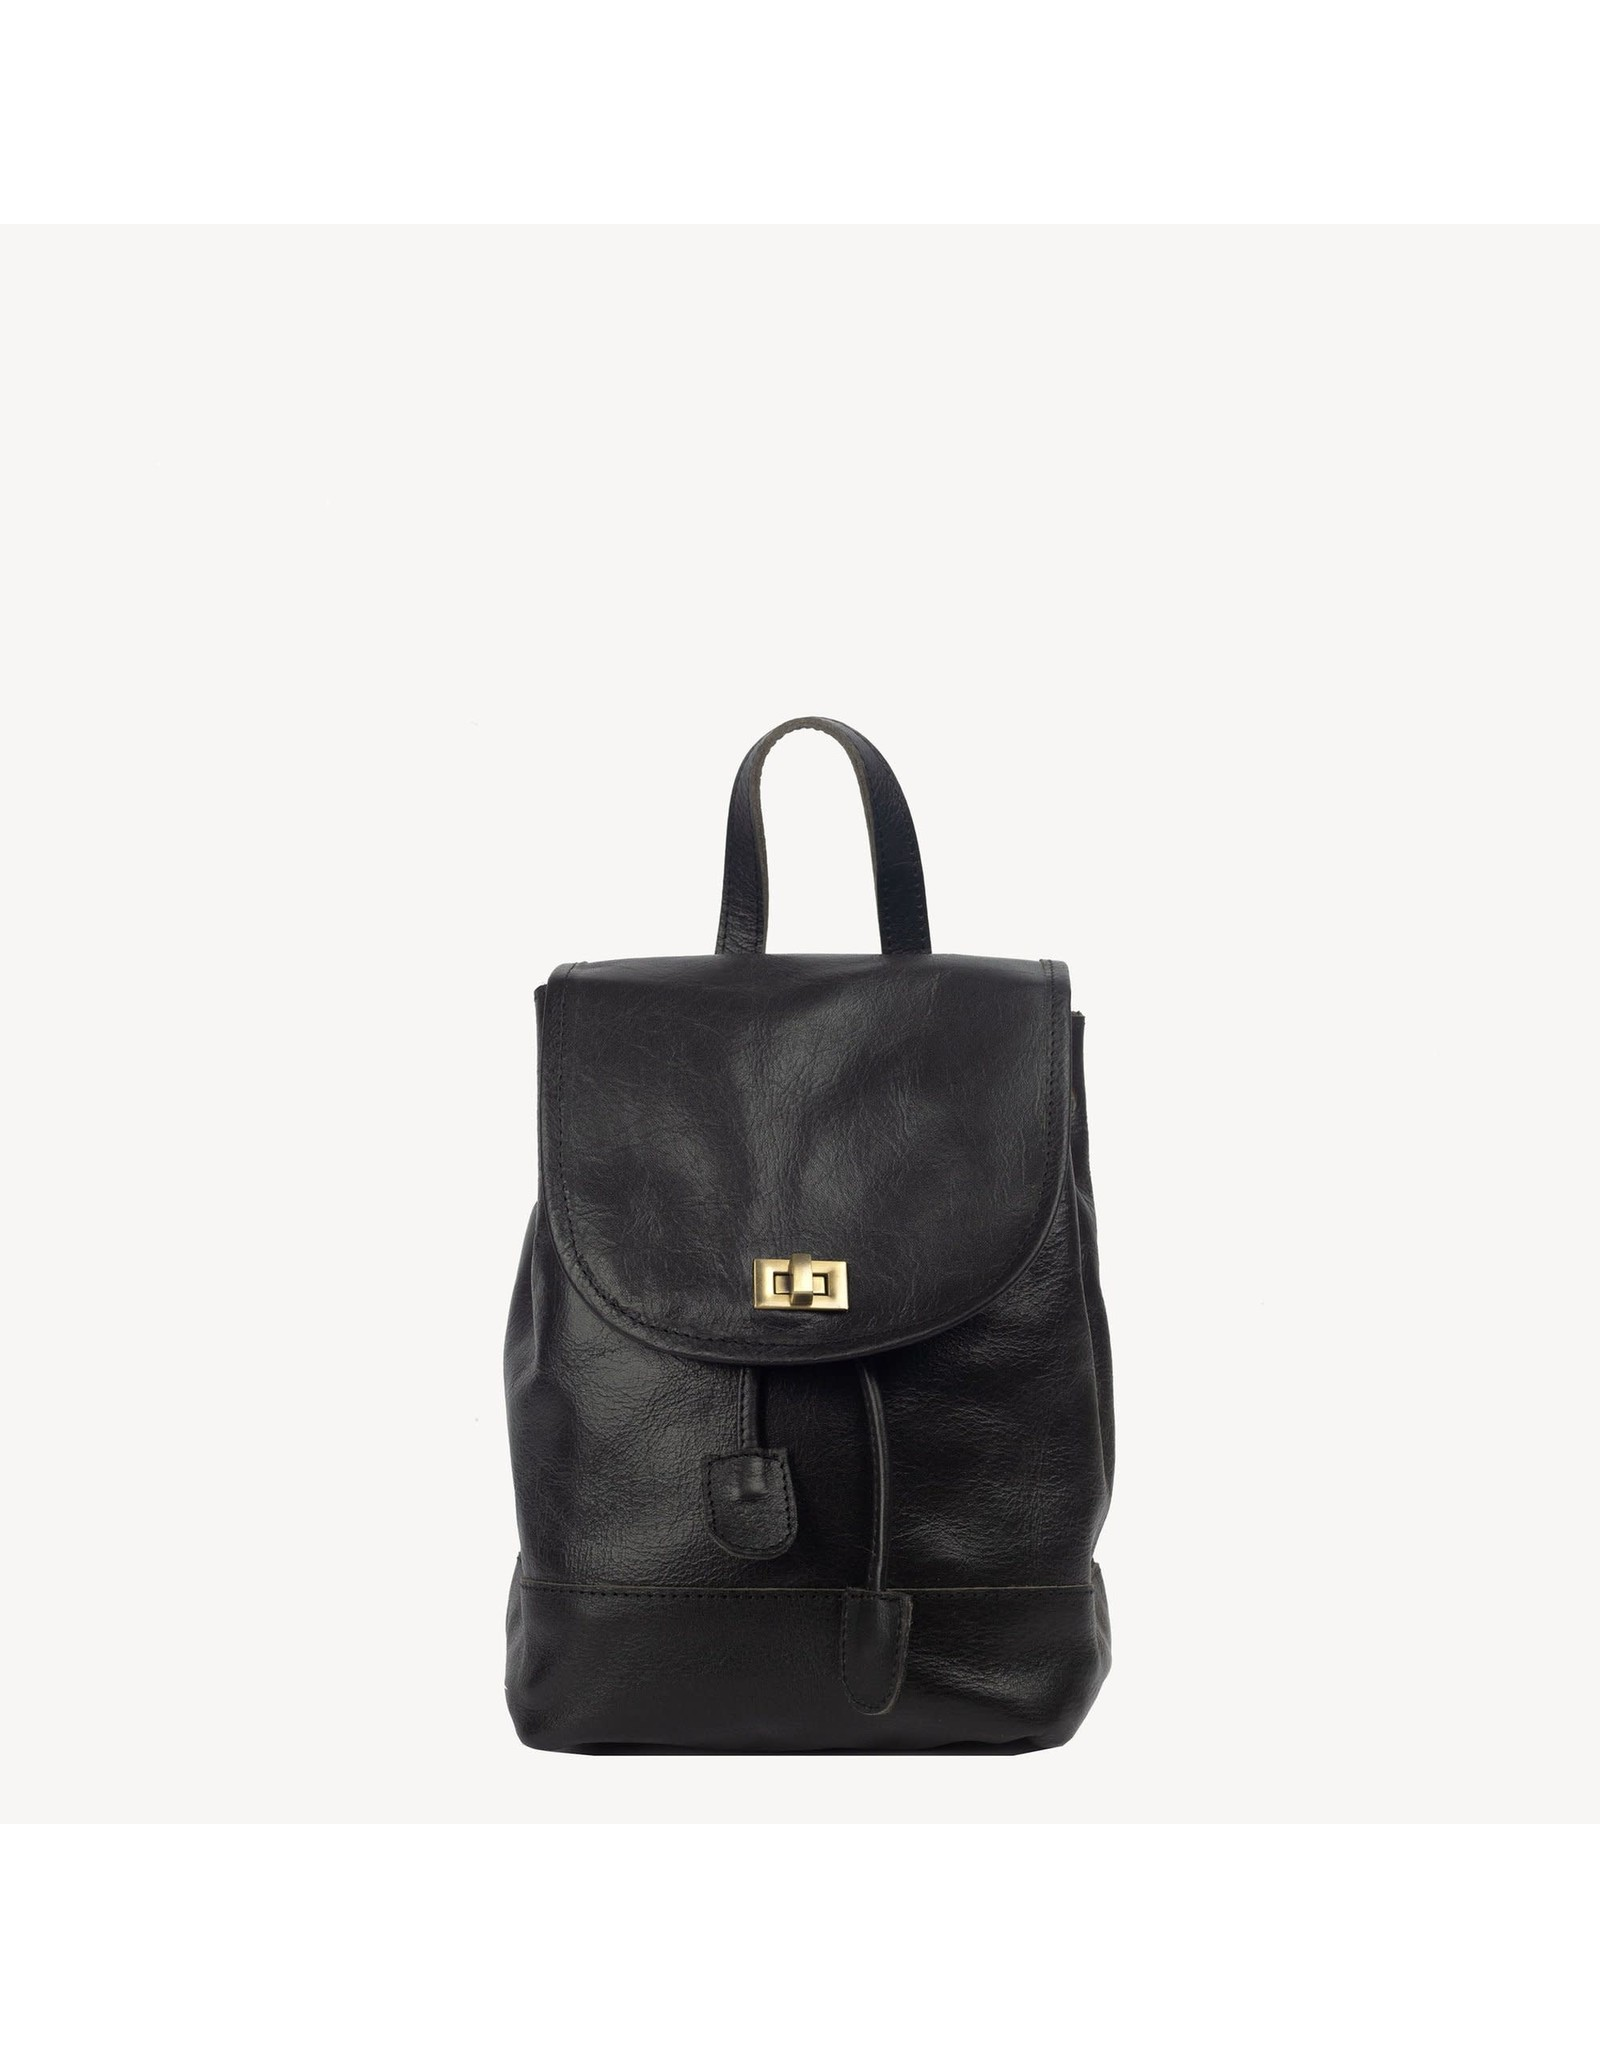 Mini Foldover Backpack in Black Leather, India